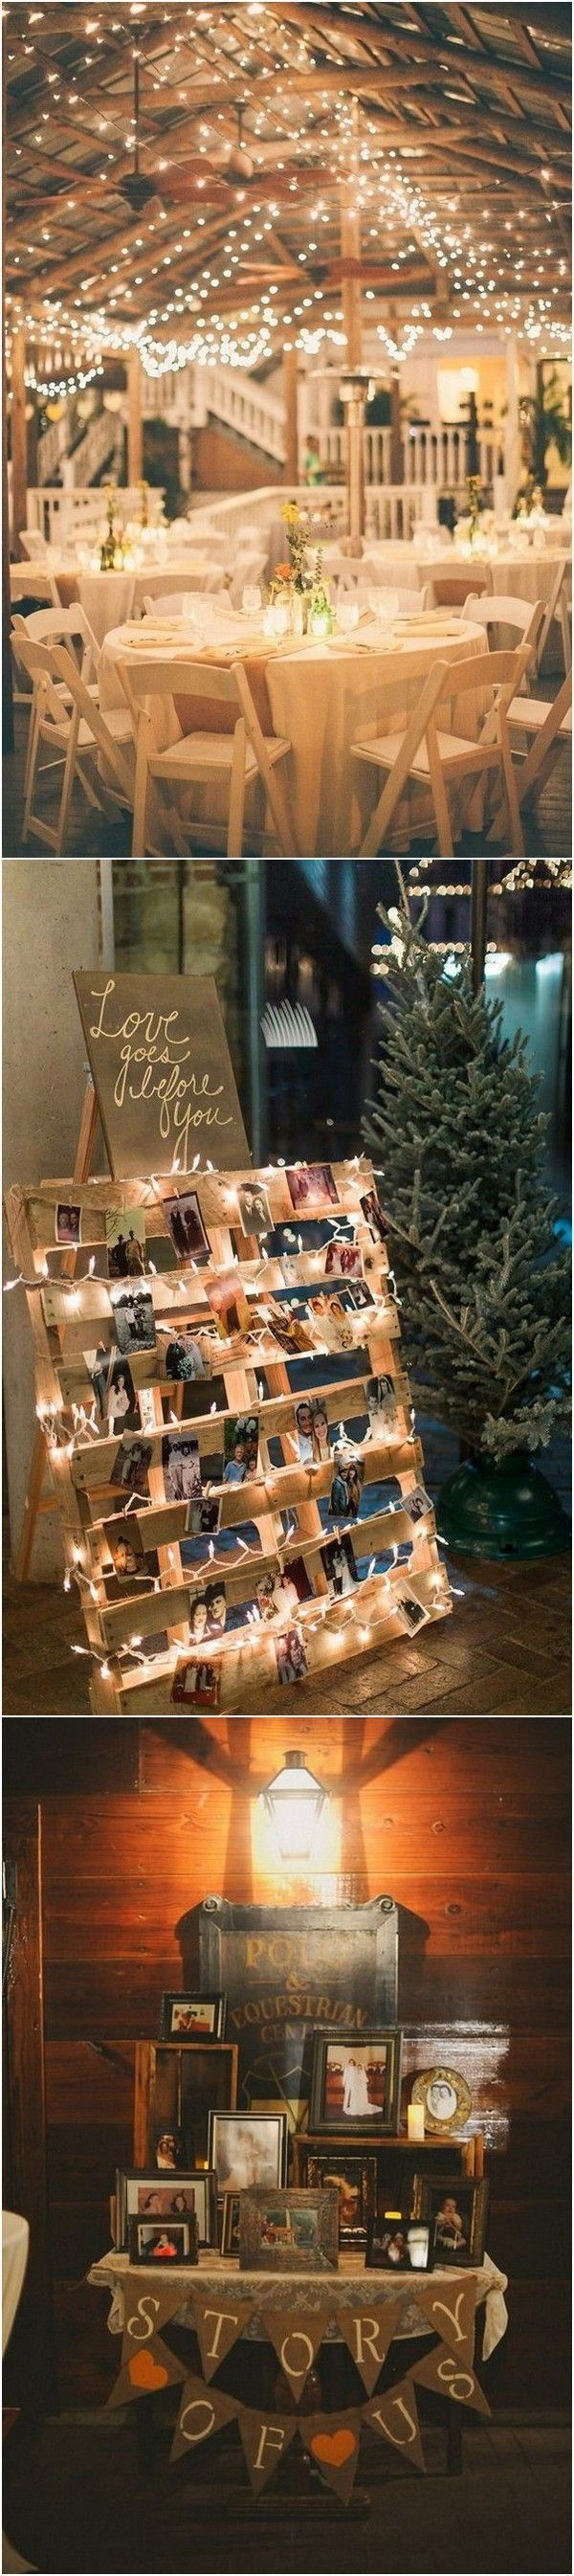 18 Perfect Country Rustic Barn Wedding Decoration Ideas – Page 3 of 3